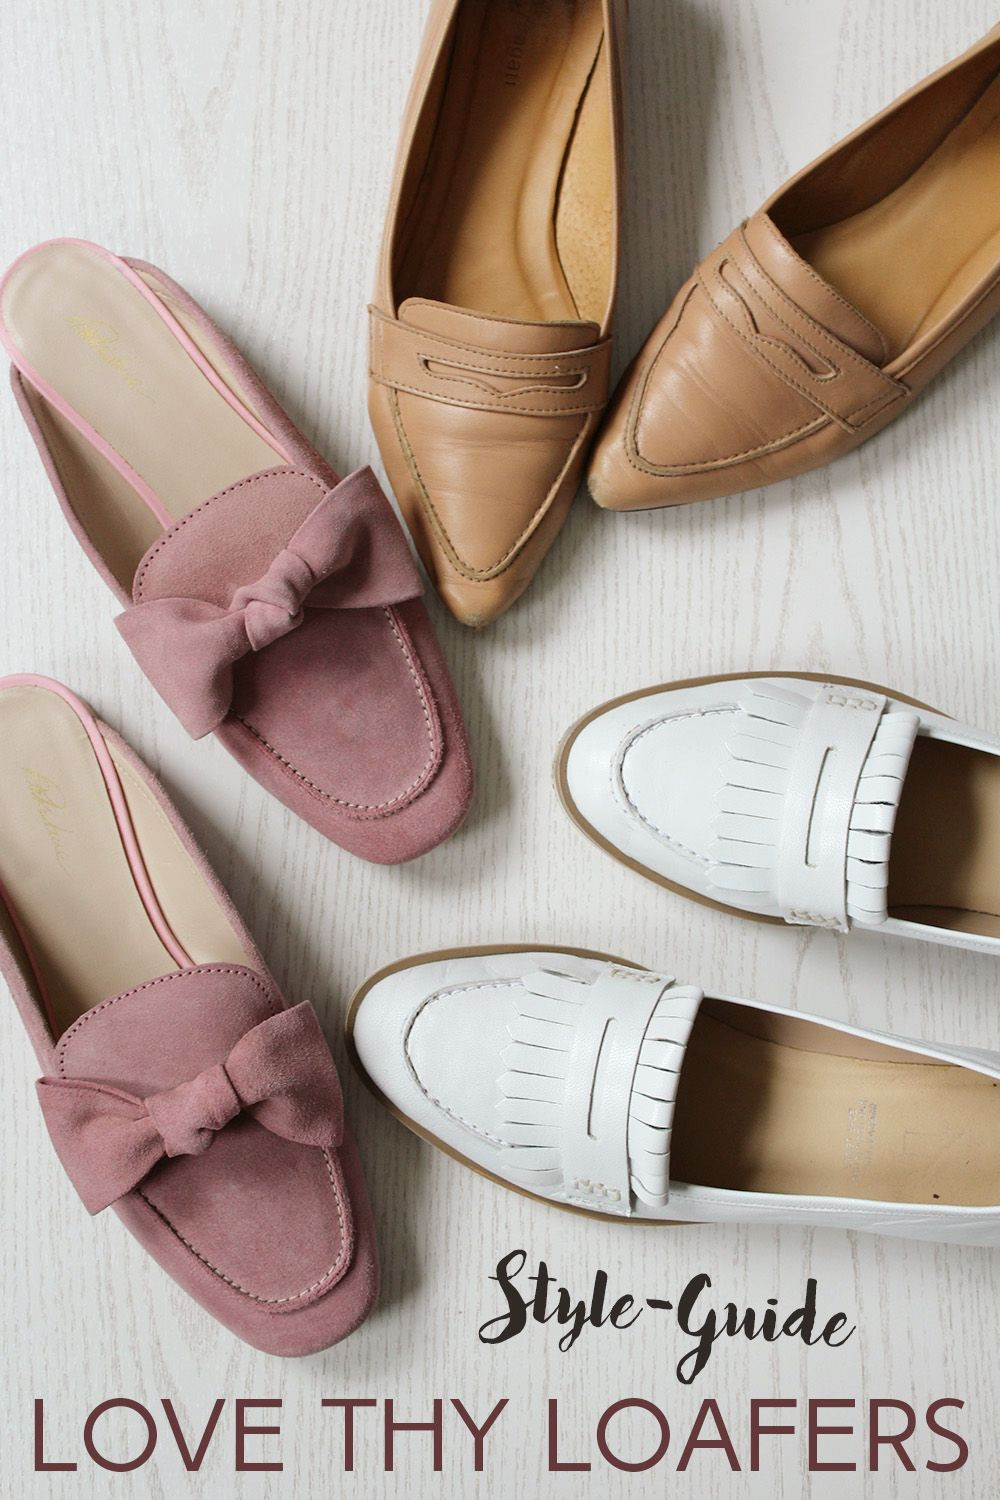 7935af31cf4e Style-Guide: Love Thy Loafers | Fashion | Sleek + Chic | business ...